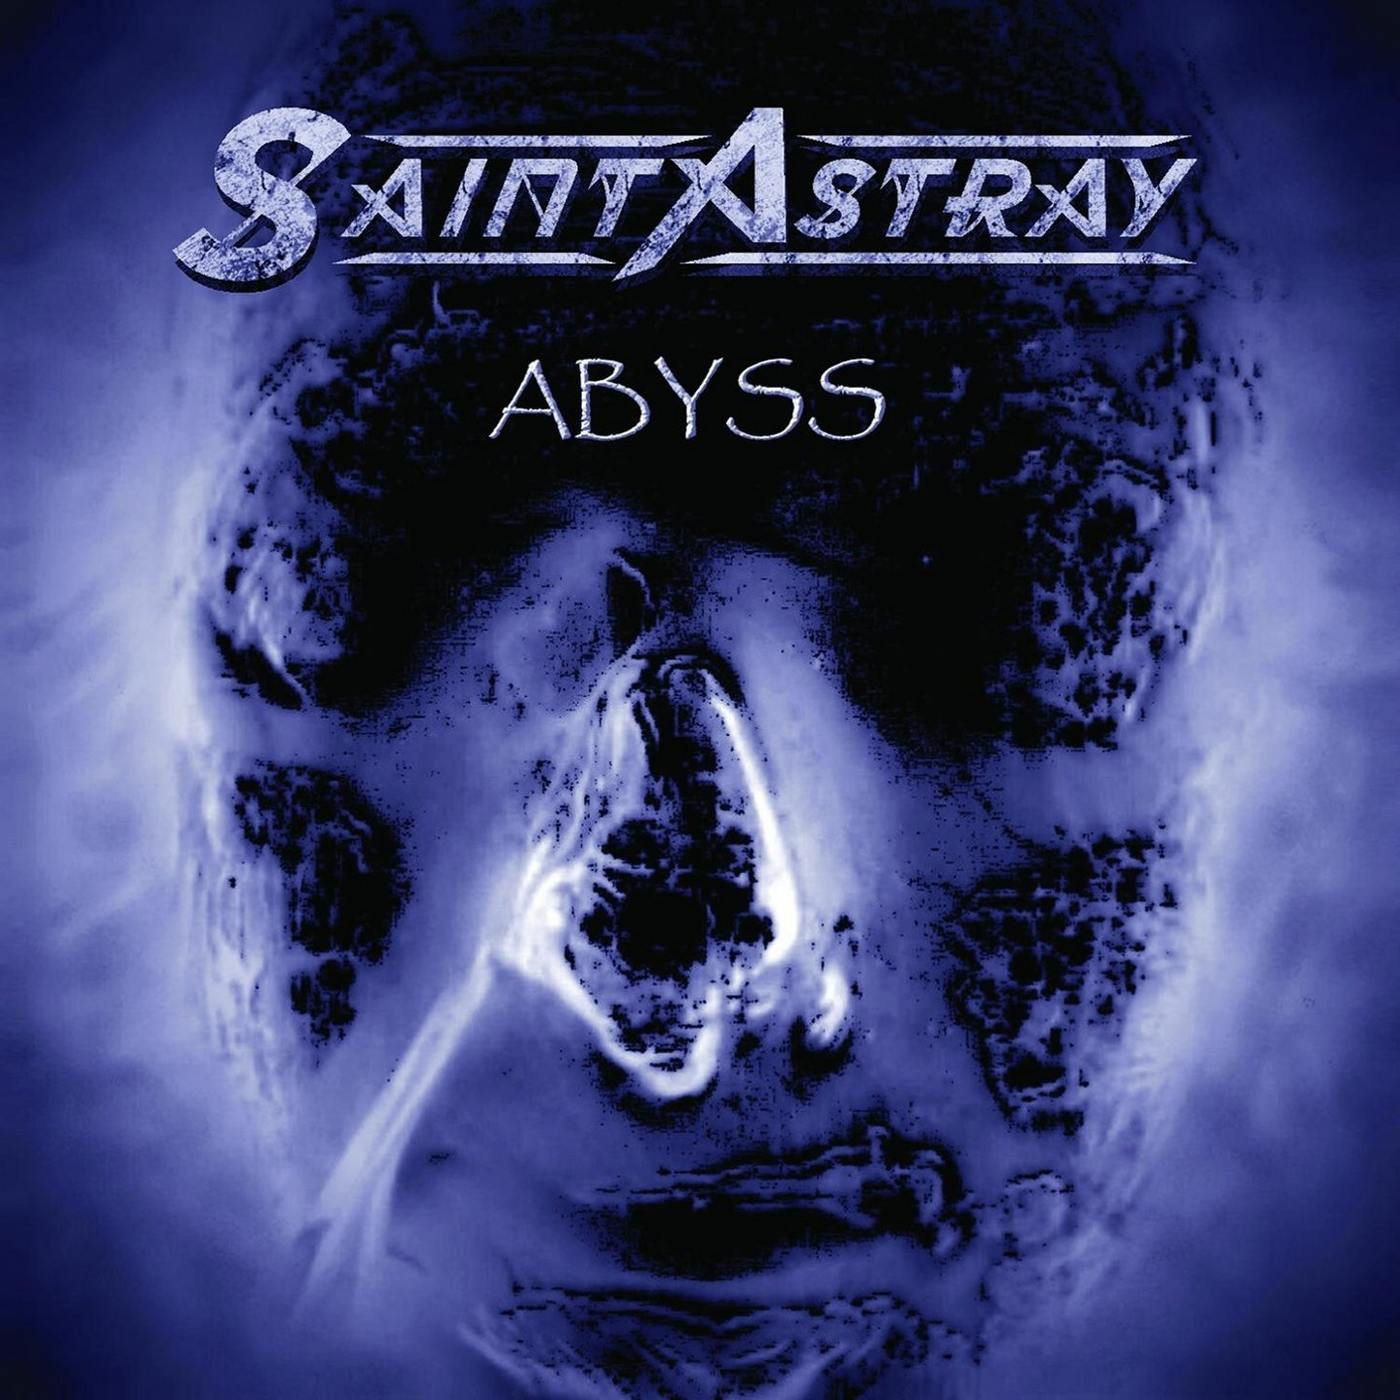 Saint Astray: Abyss (2017) Book Cover